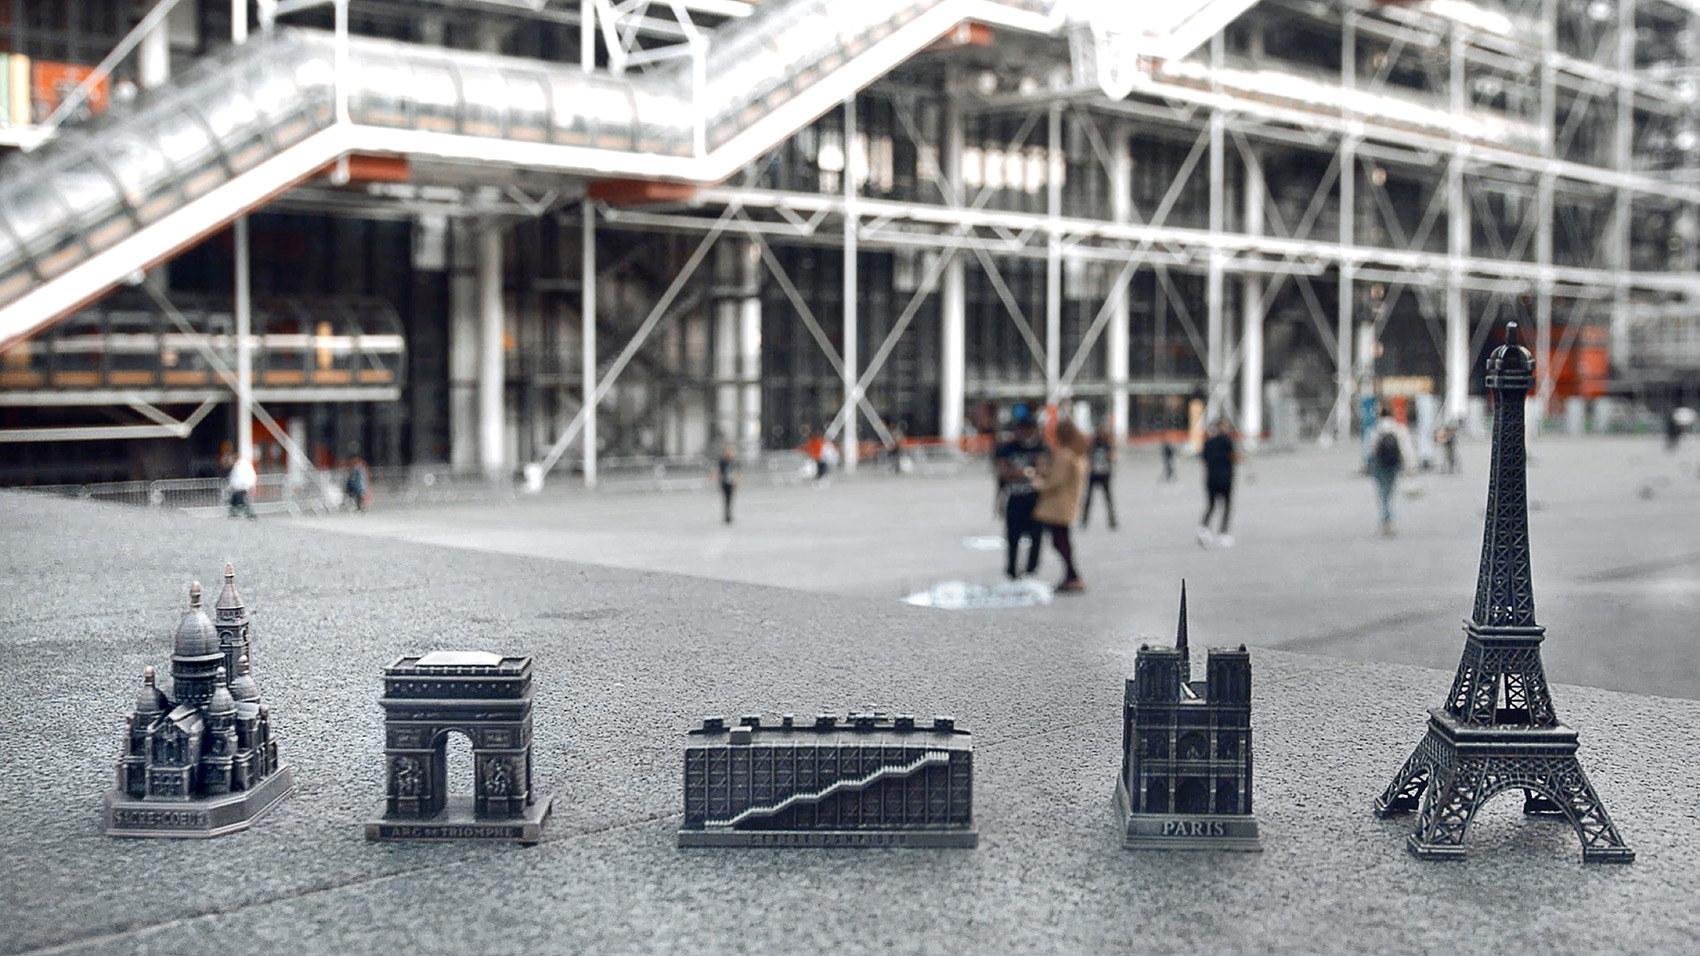 A Souvenir for the Pompidou Center